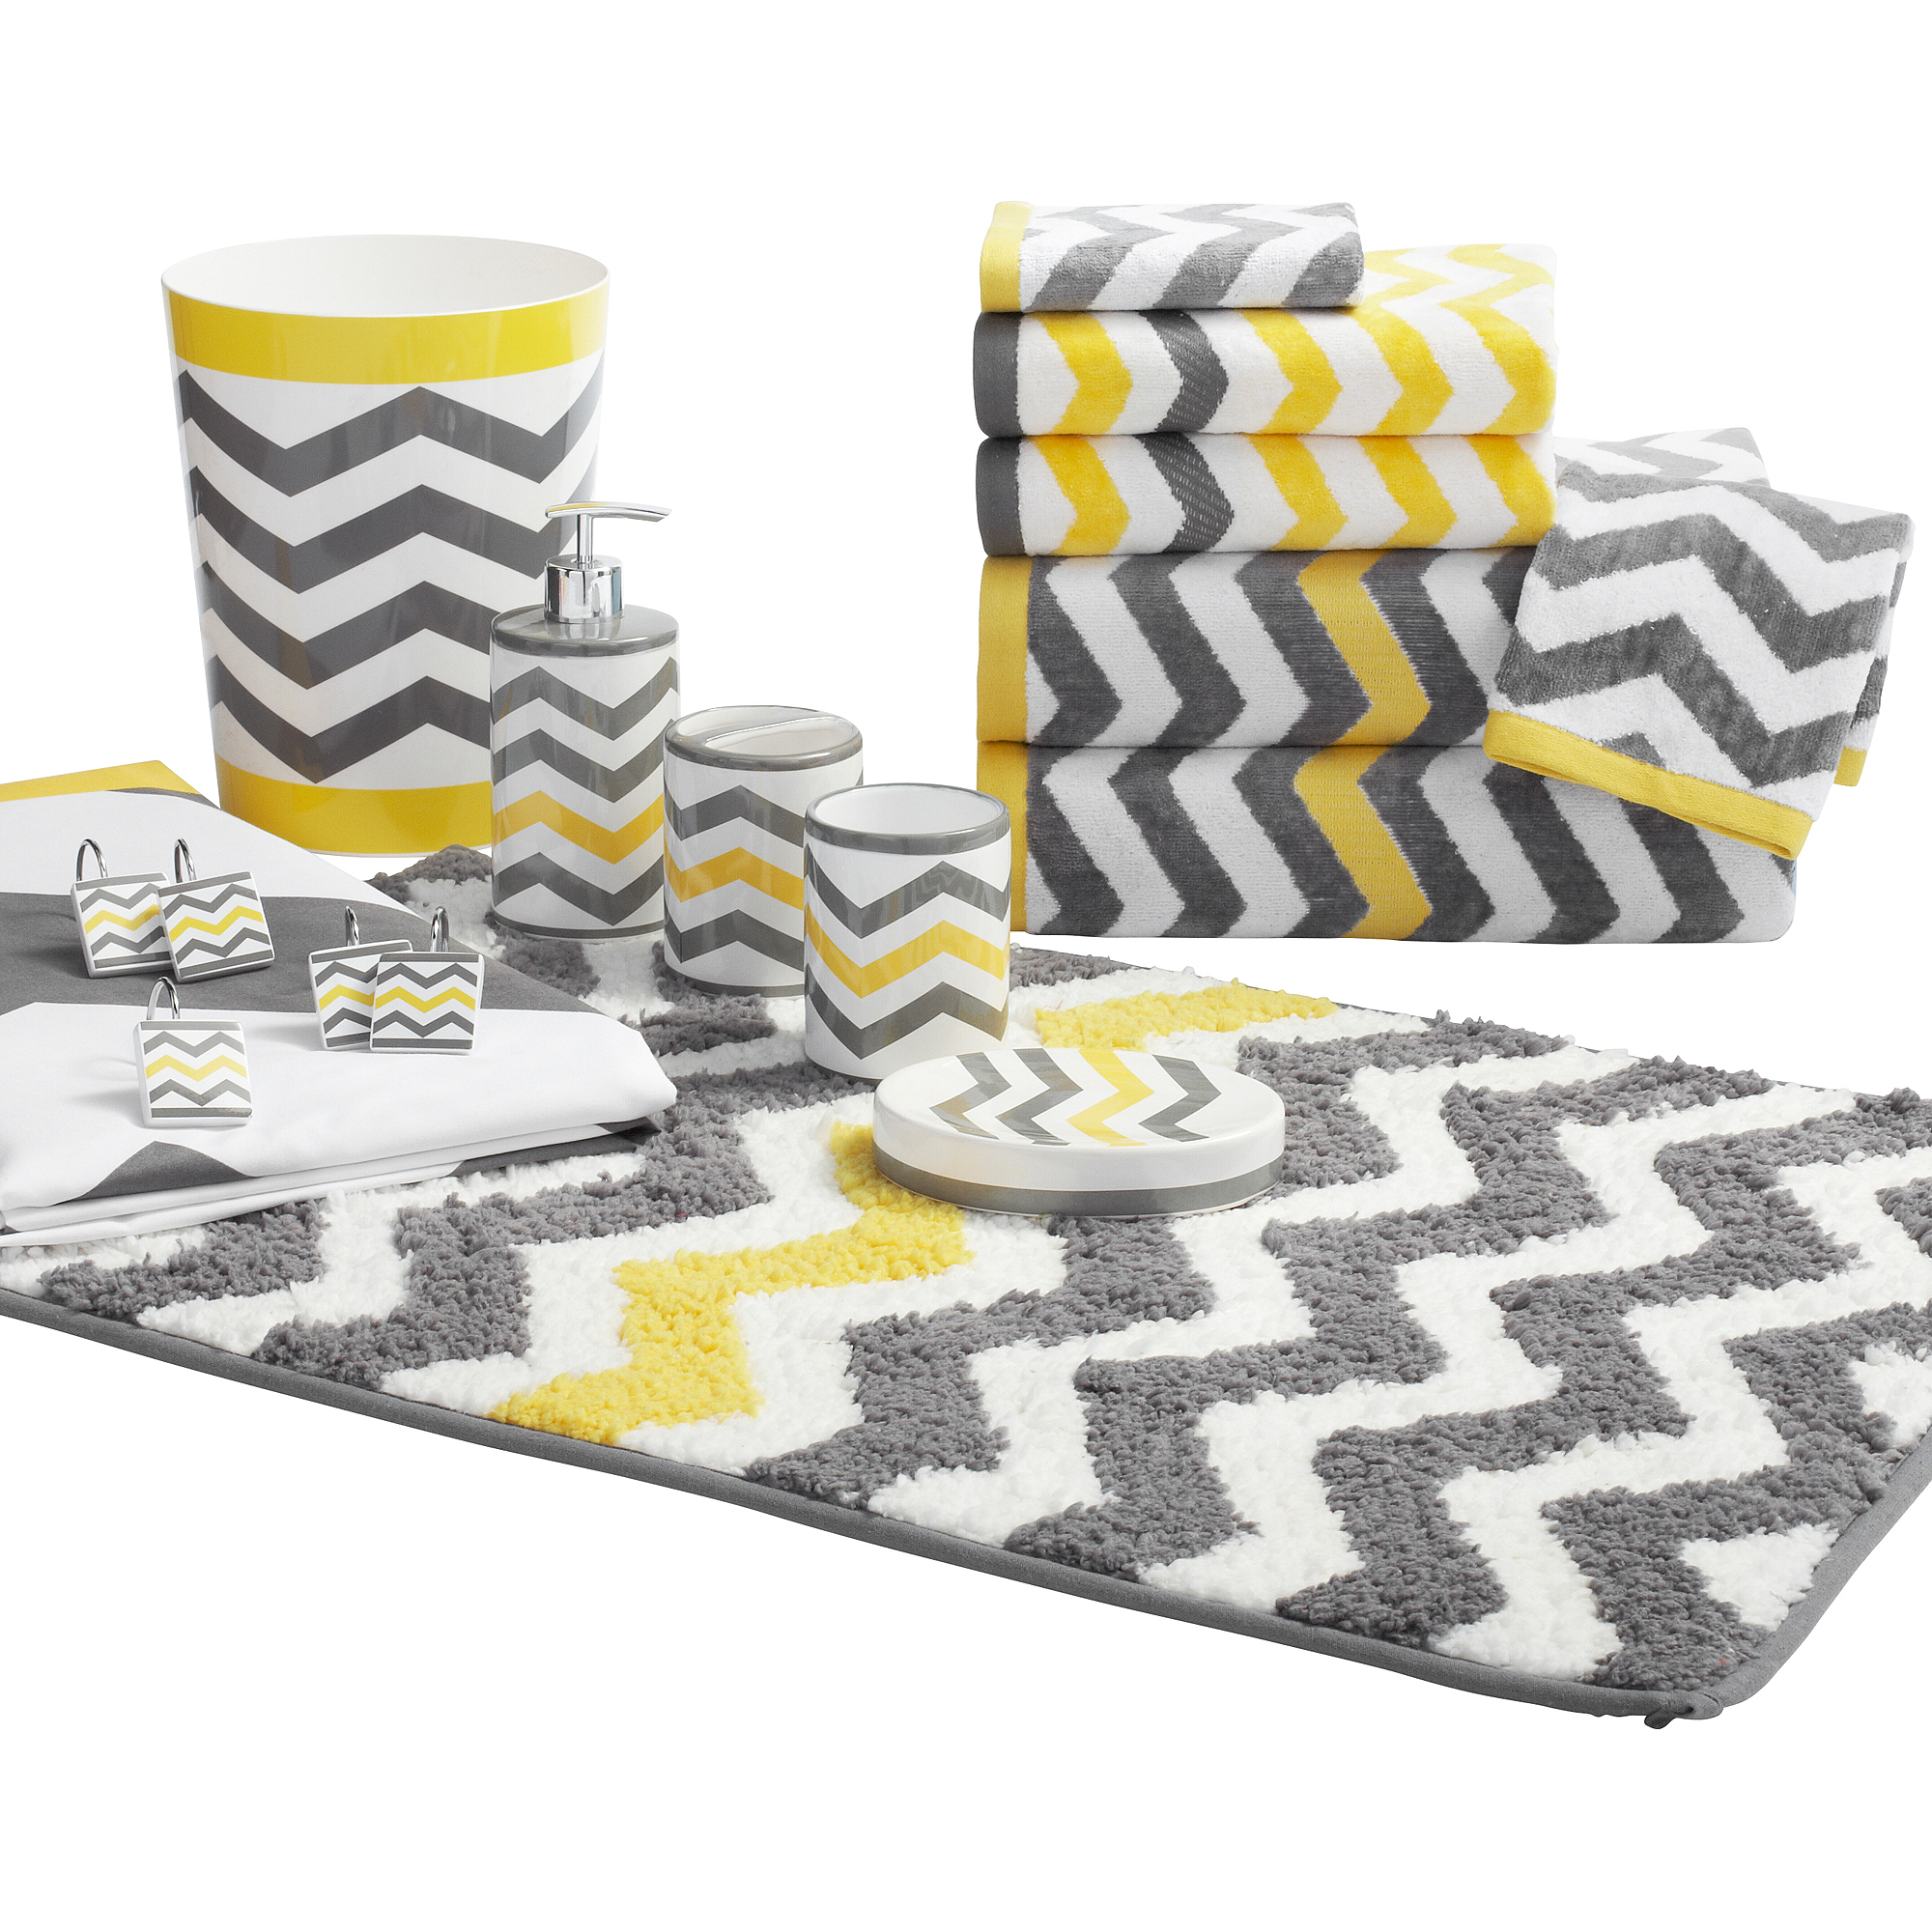 Mainstays Chevron Decorative Bath Towel Collection Walmartcom - Yellow bath towels for small bathroom ideas